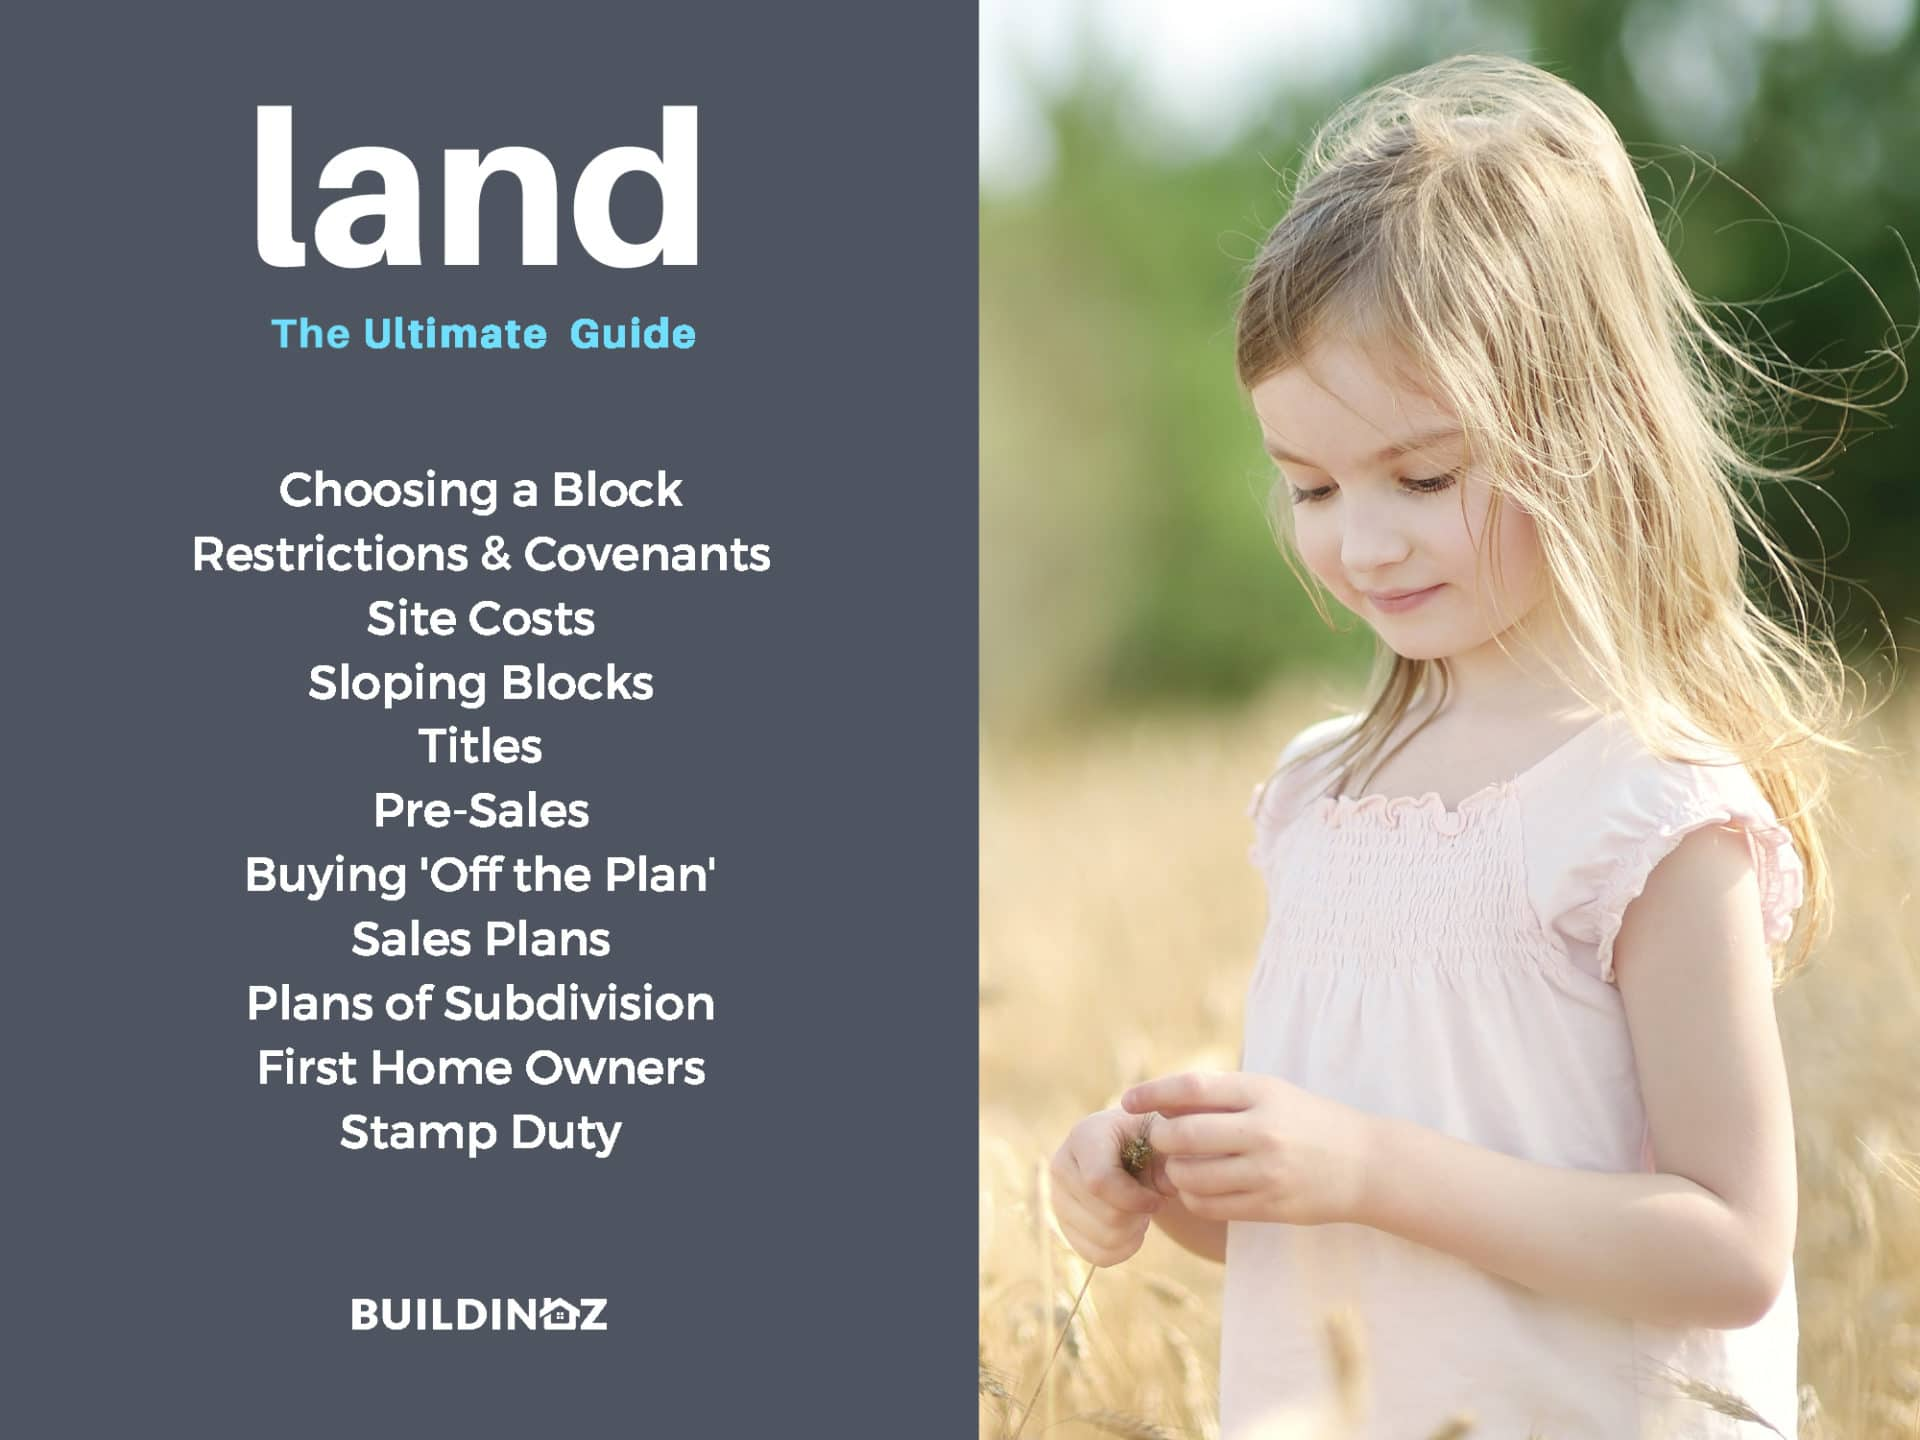 Land - The Ultimate Guide